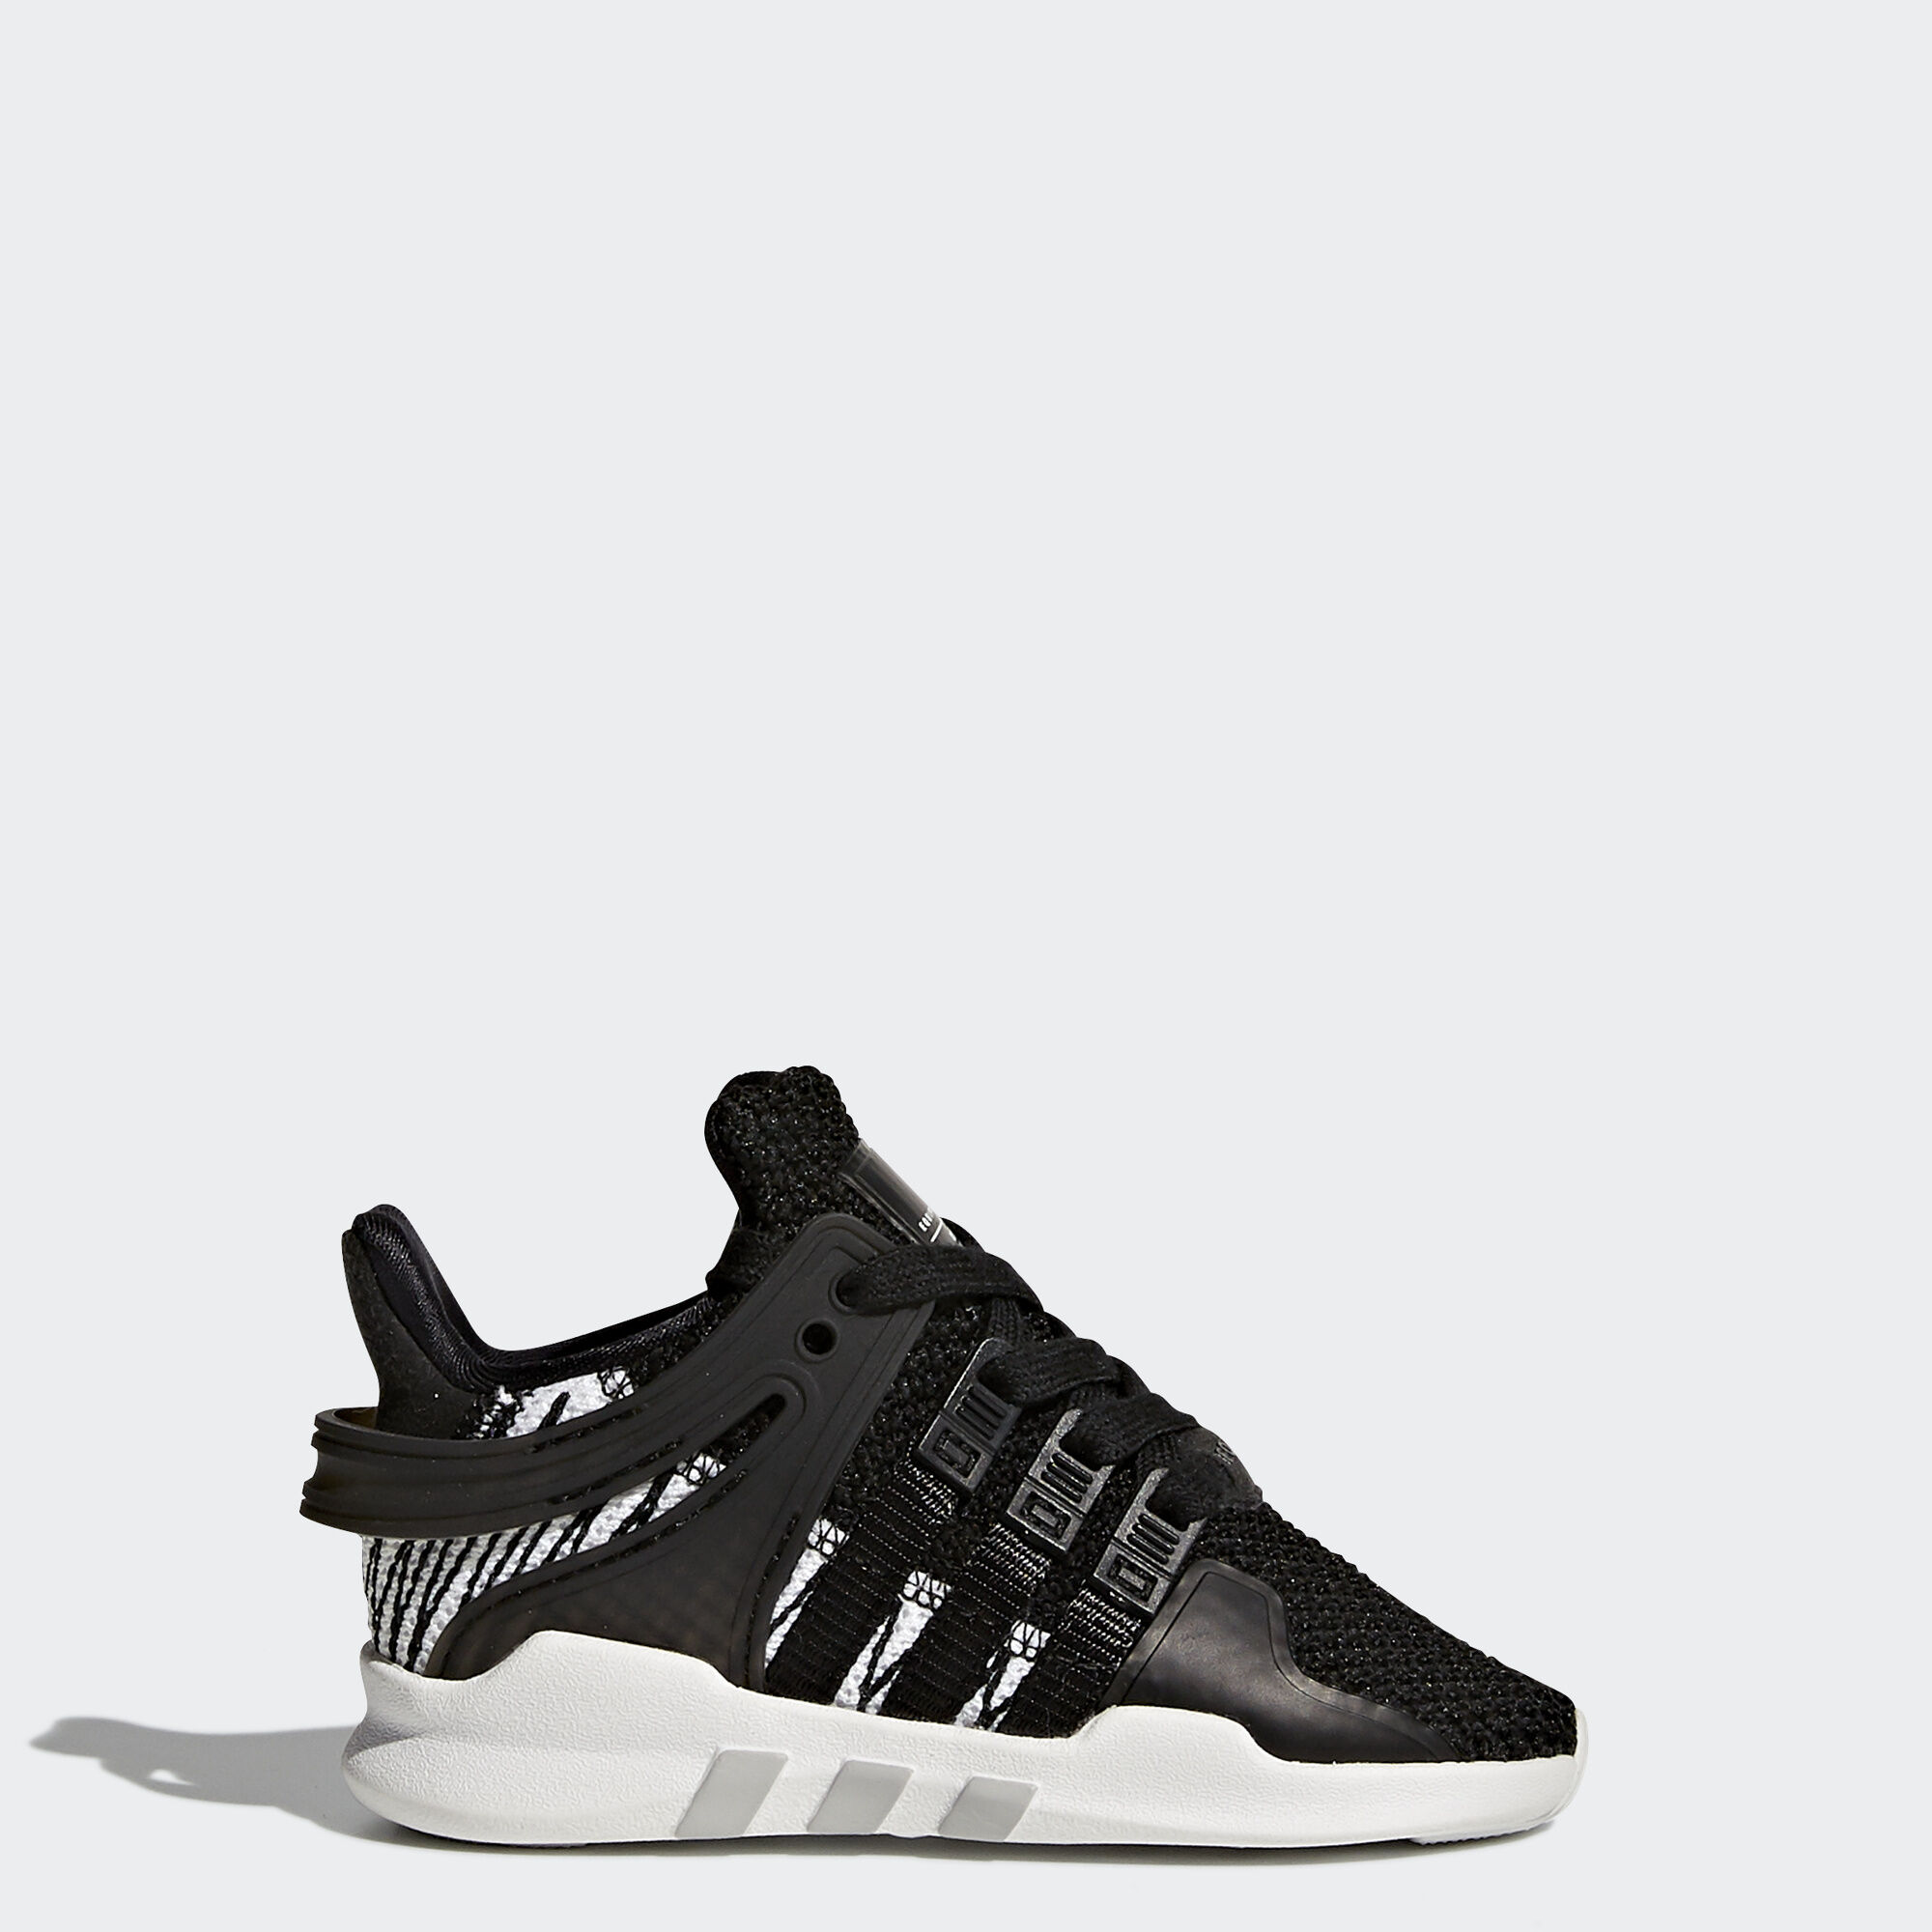 Adidas EQT SUPPORT ADV The Goods Dept